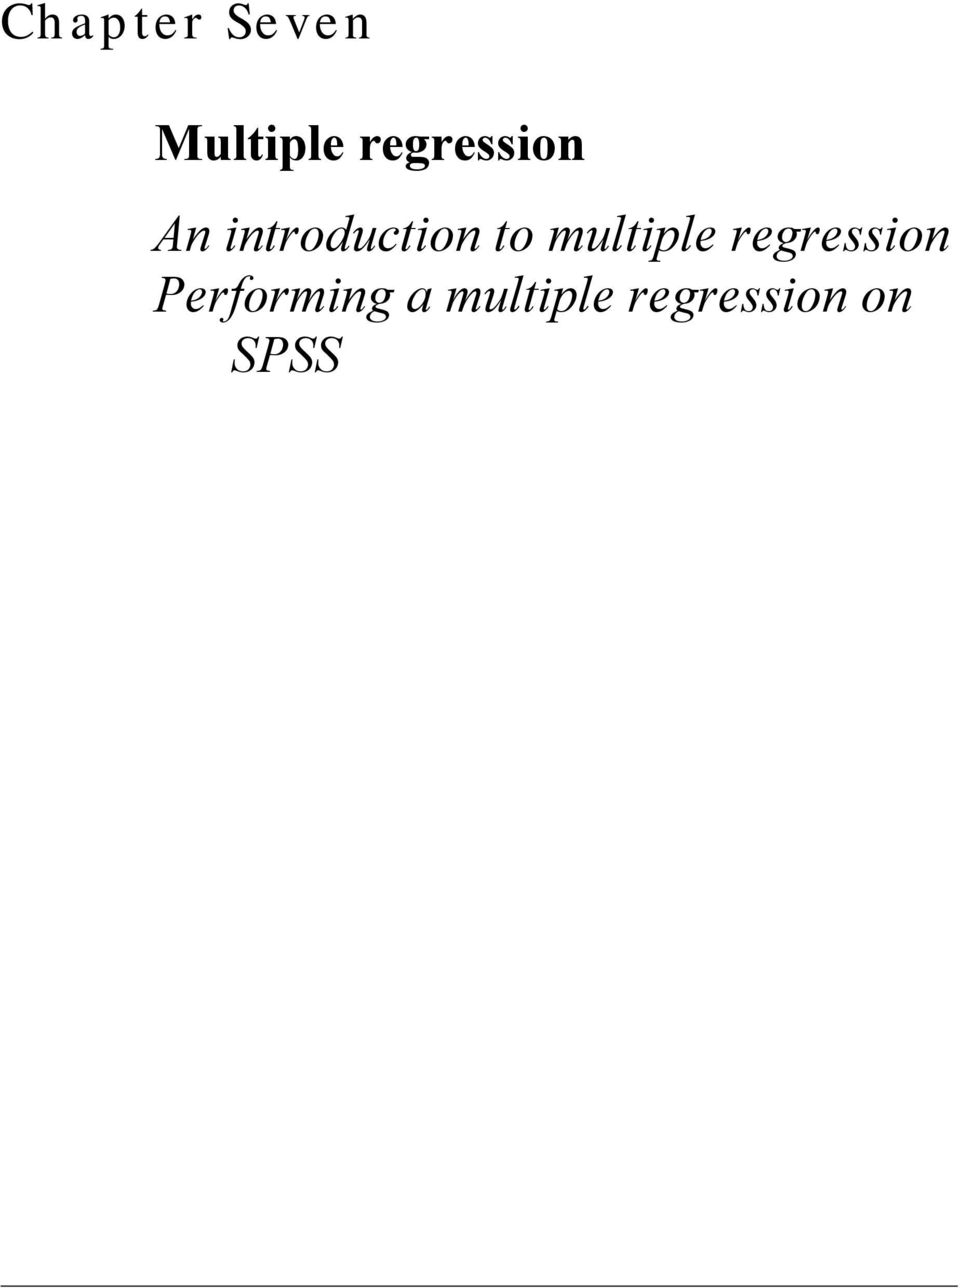 to multiple regression